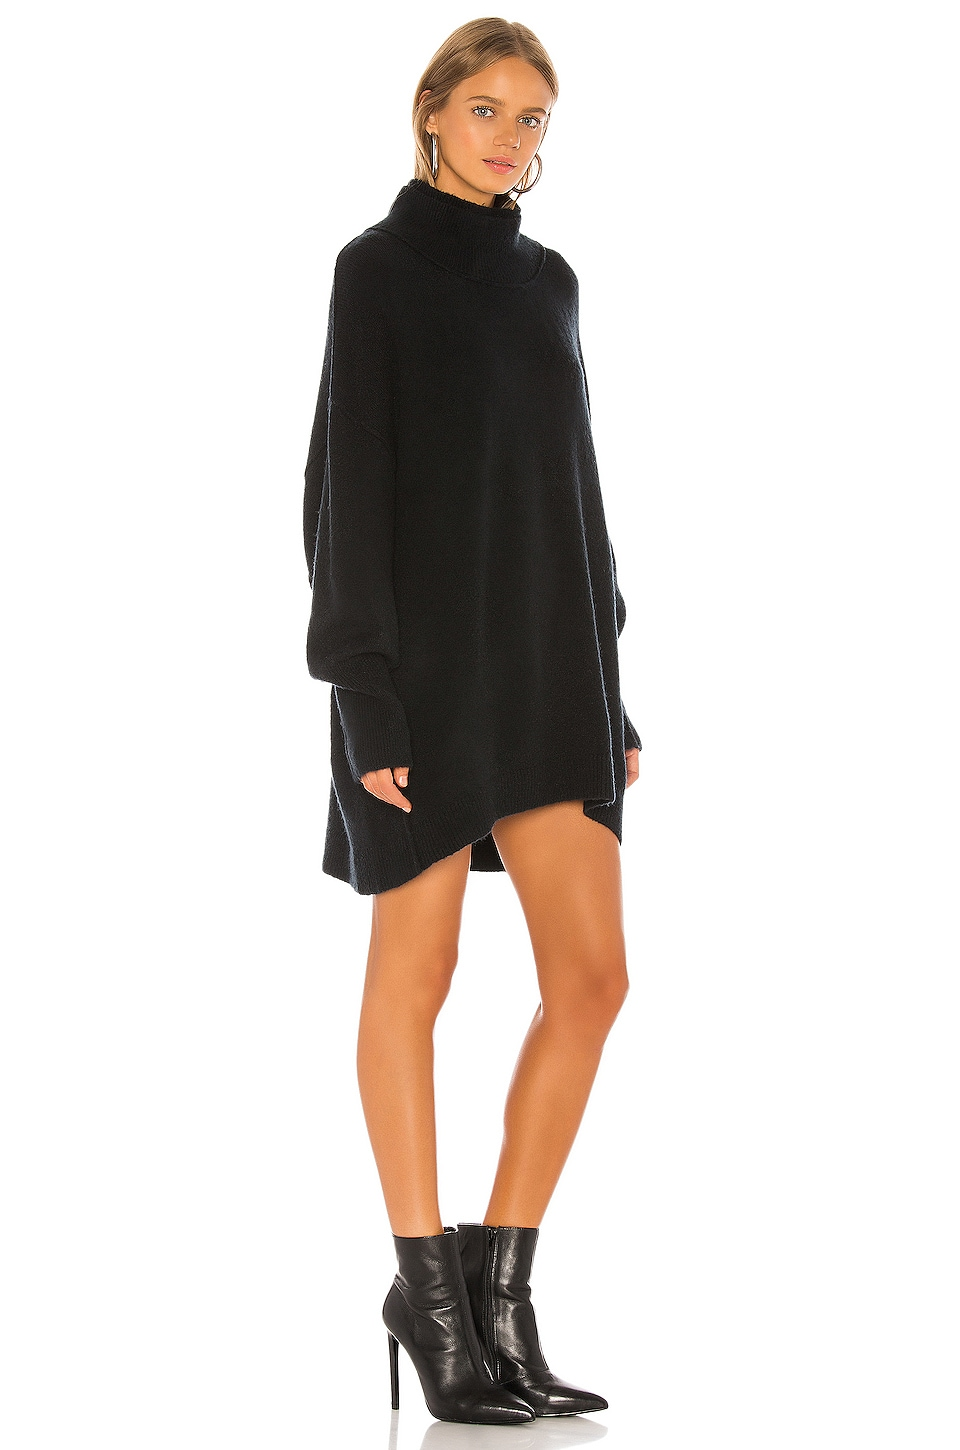 Afterglow Mock Neck Sweater Dress, view 2, click to view large image.